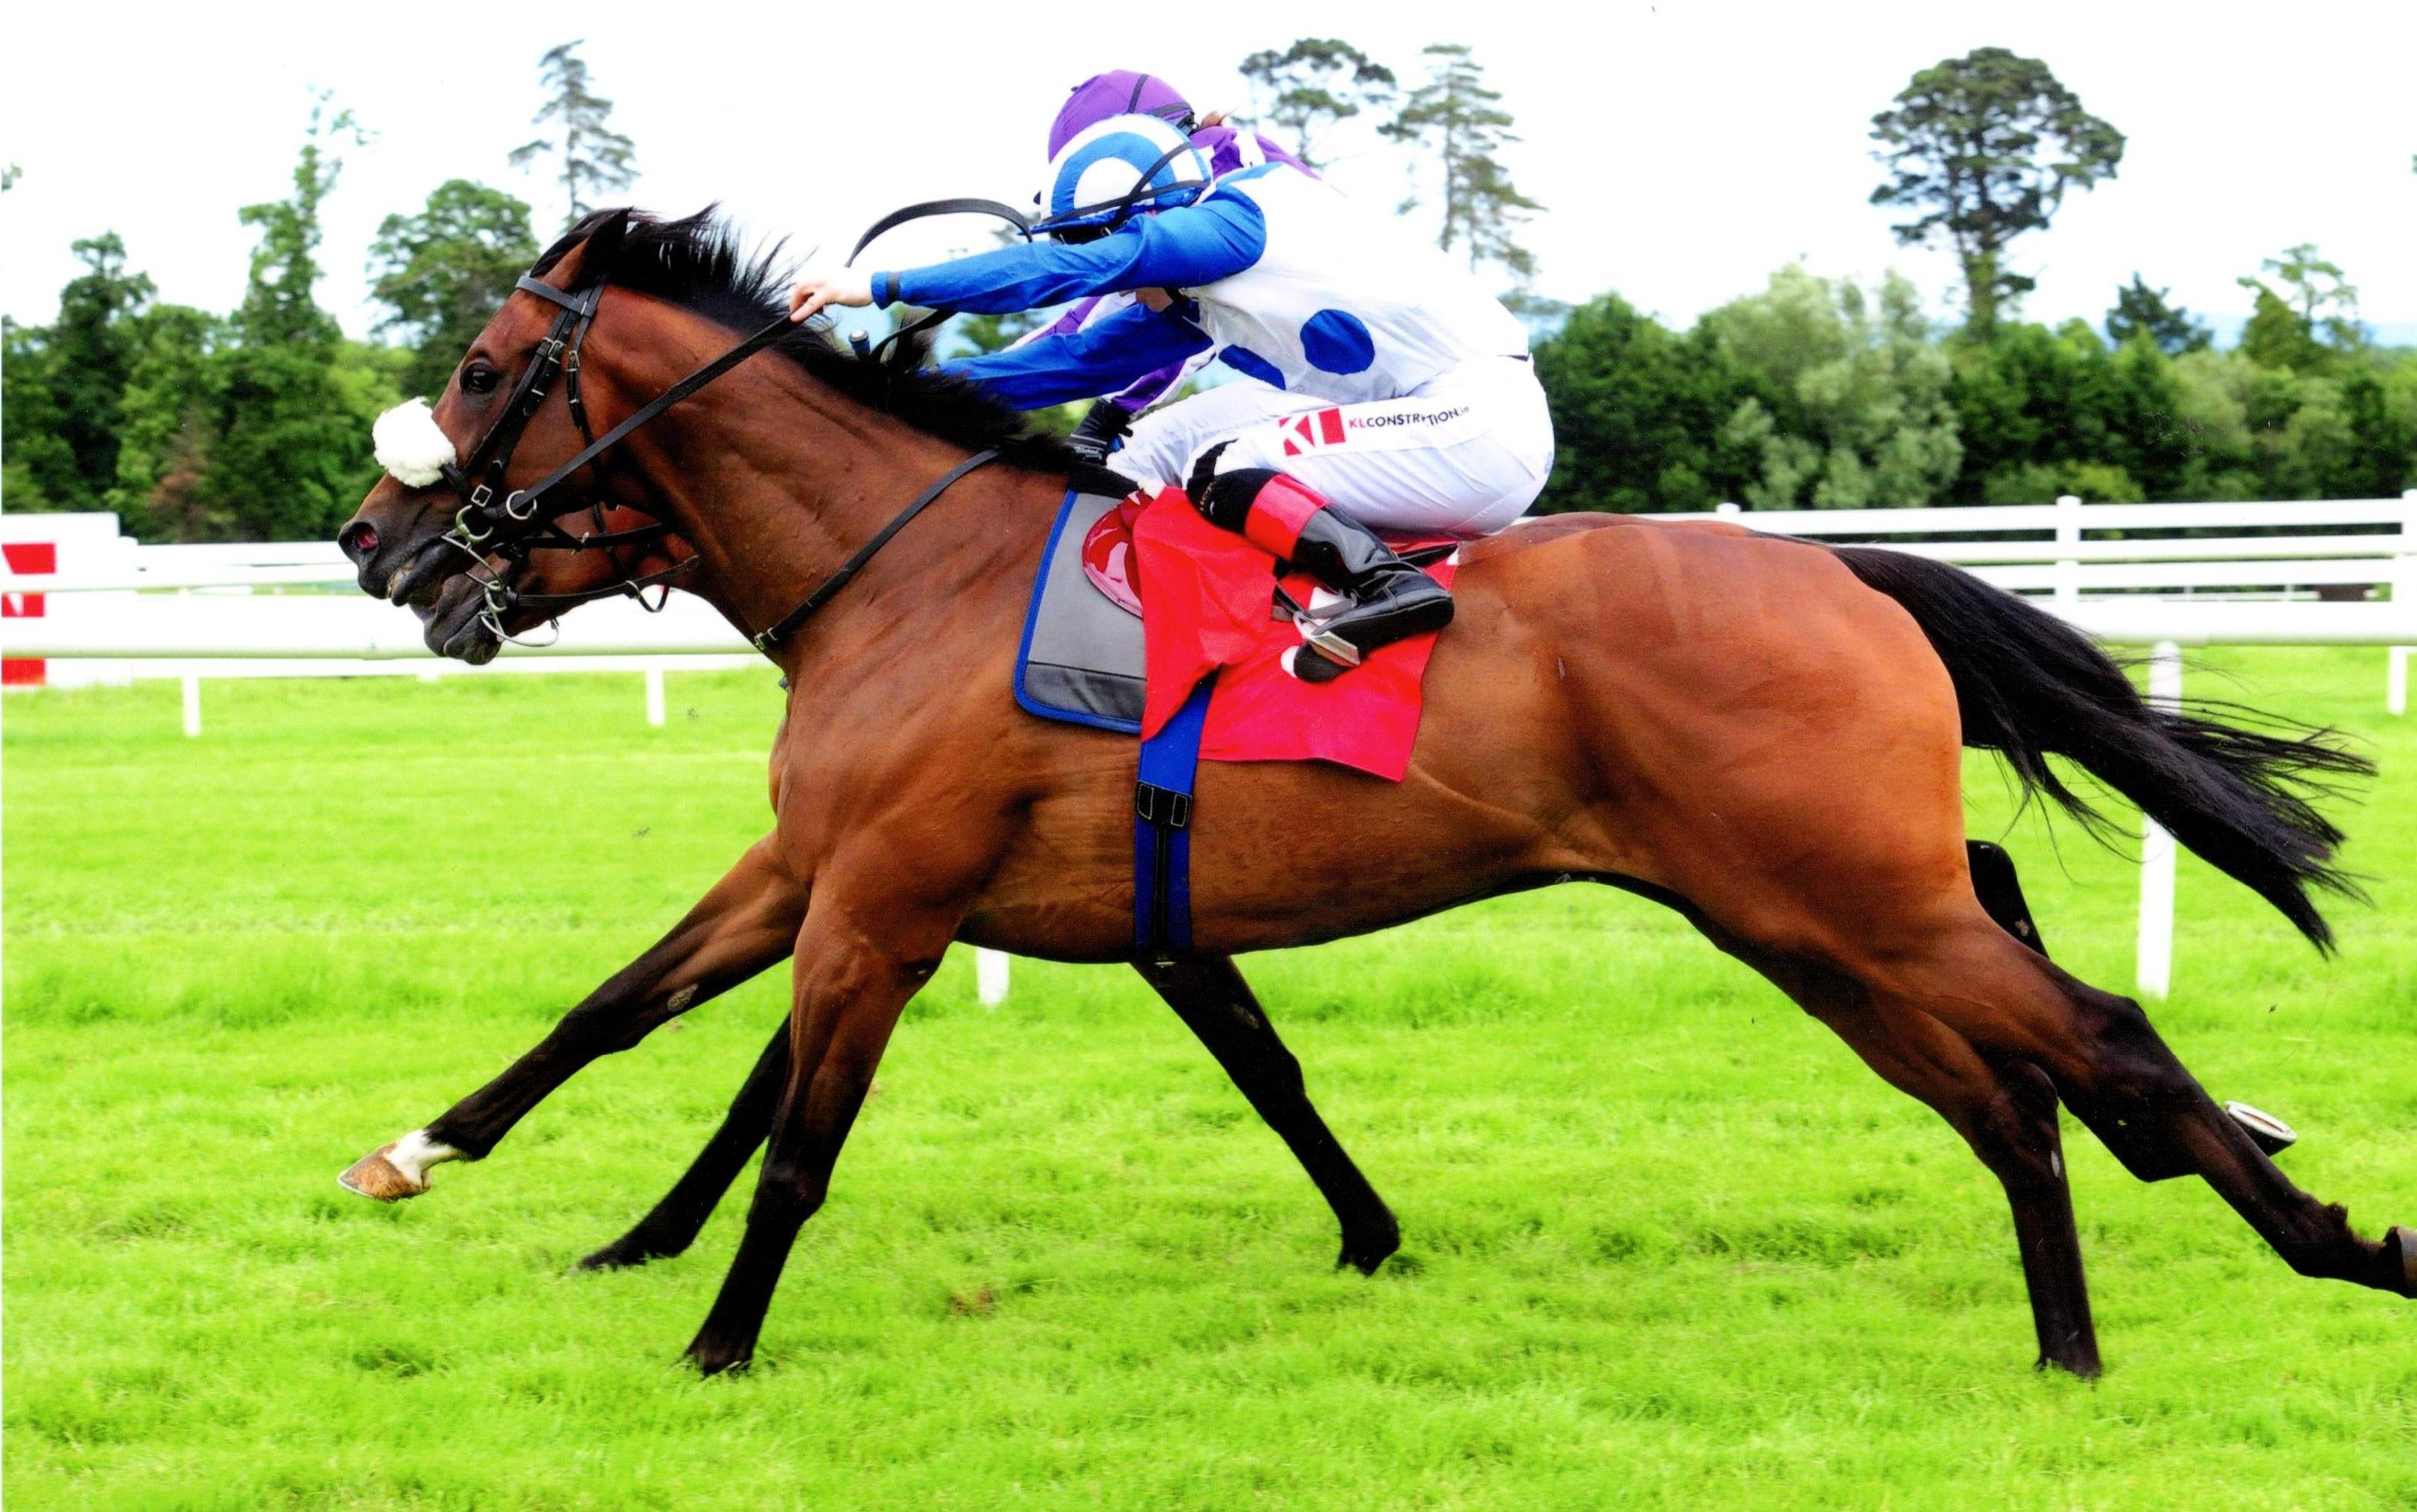 TENNESSEE WILDCAT notches up another victory at Gowran 18th June 2017